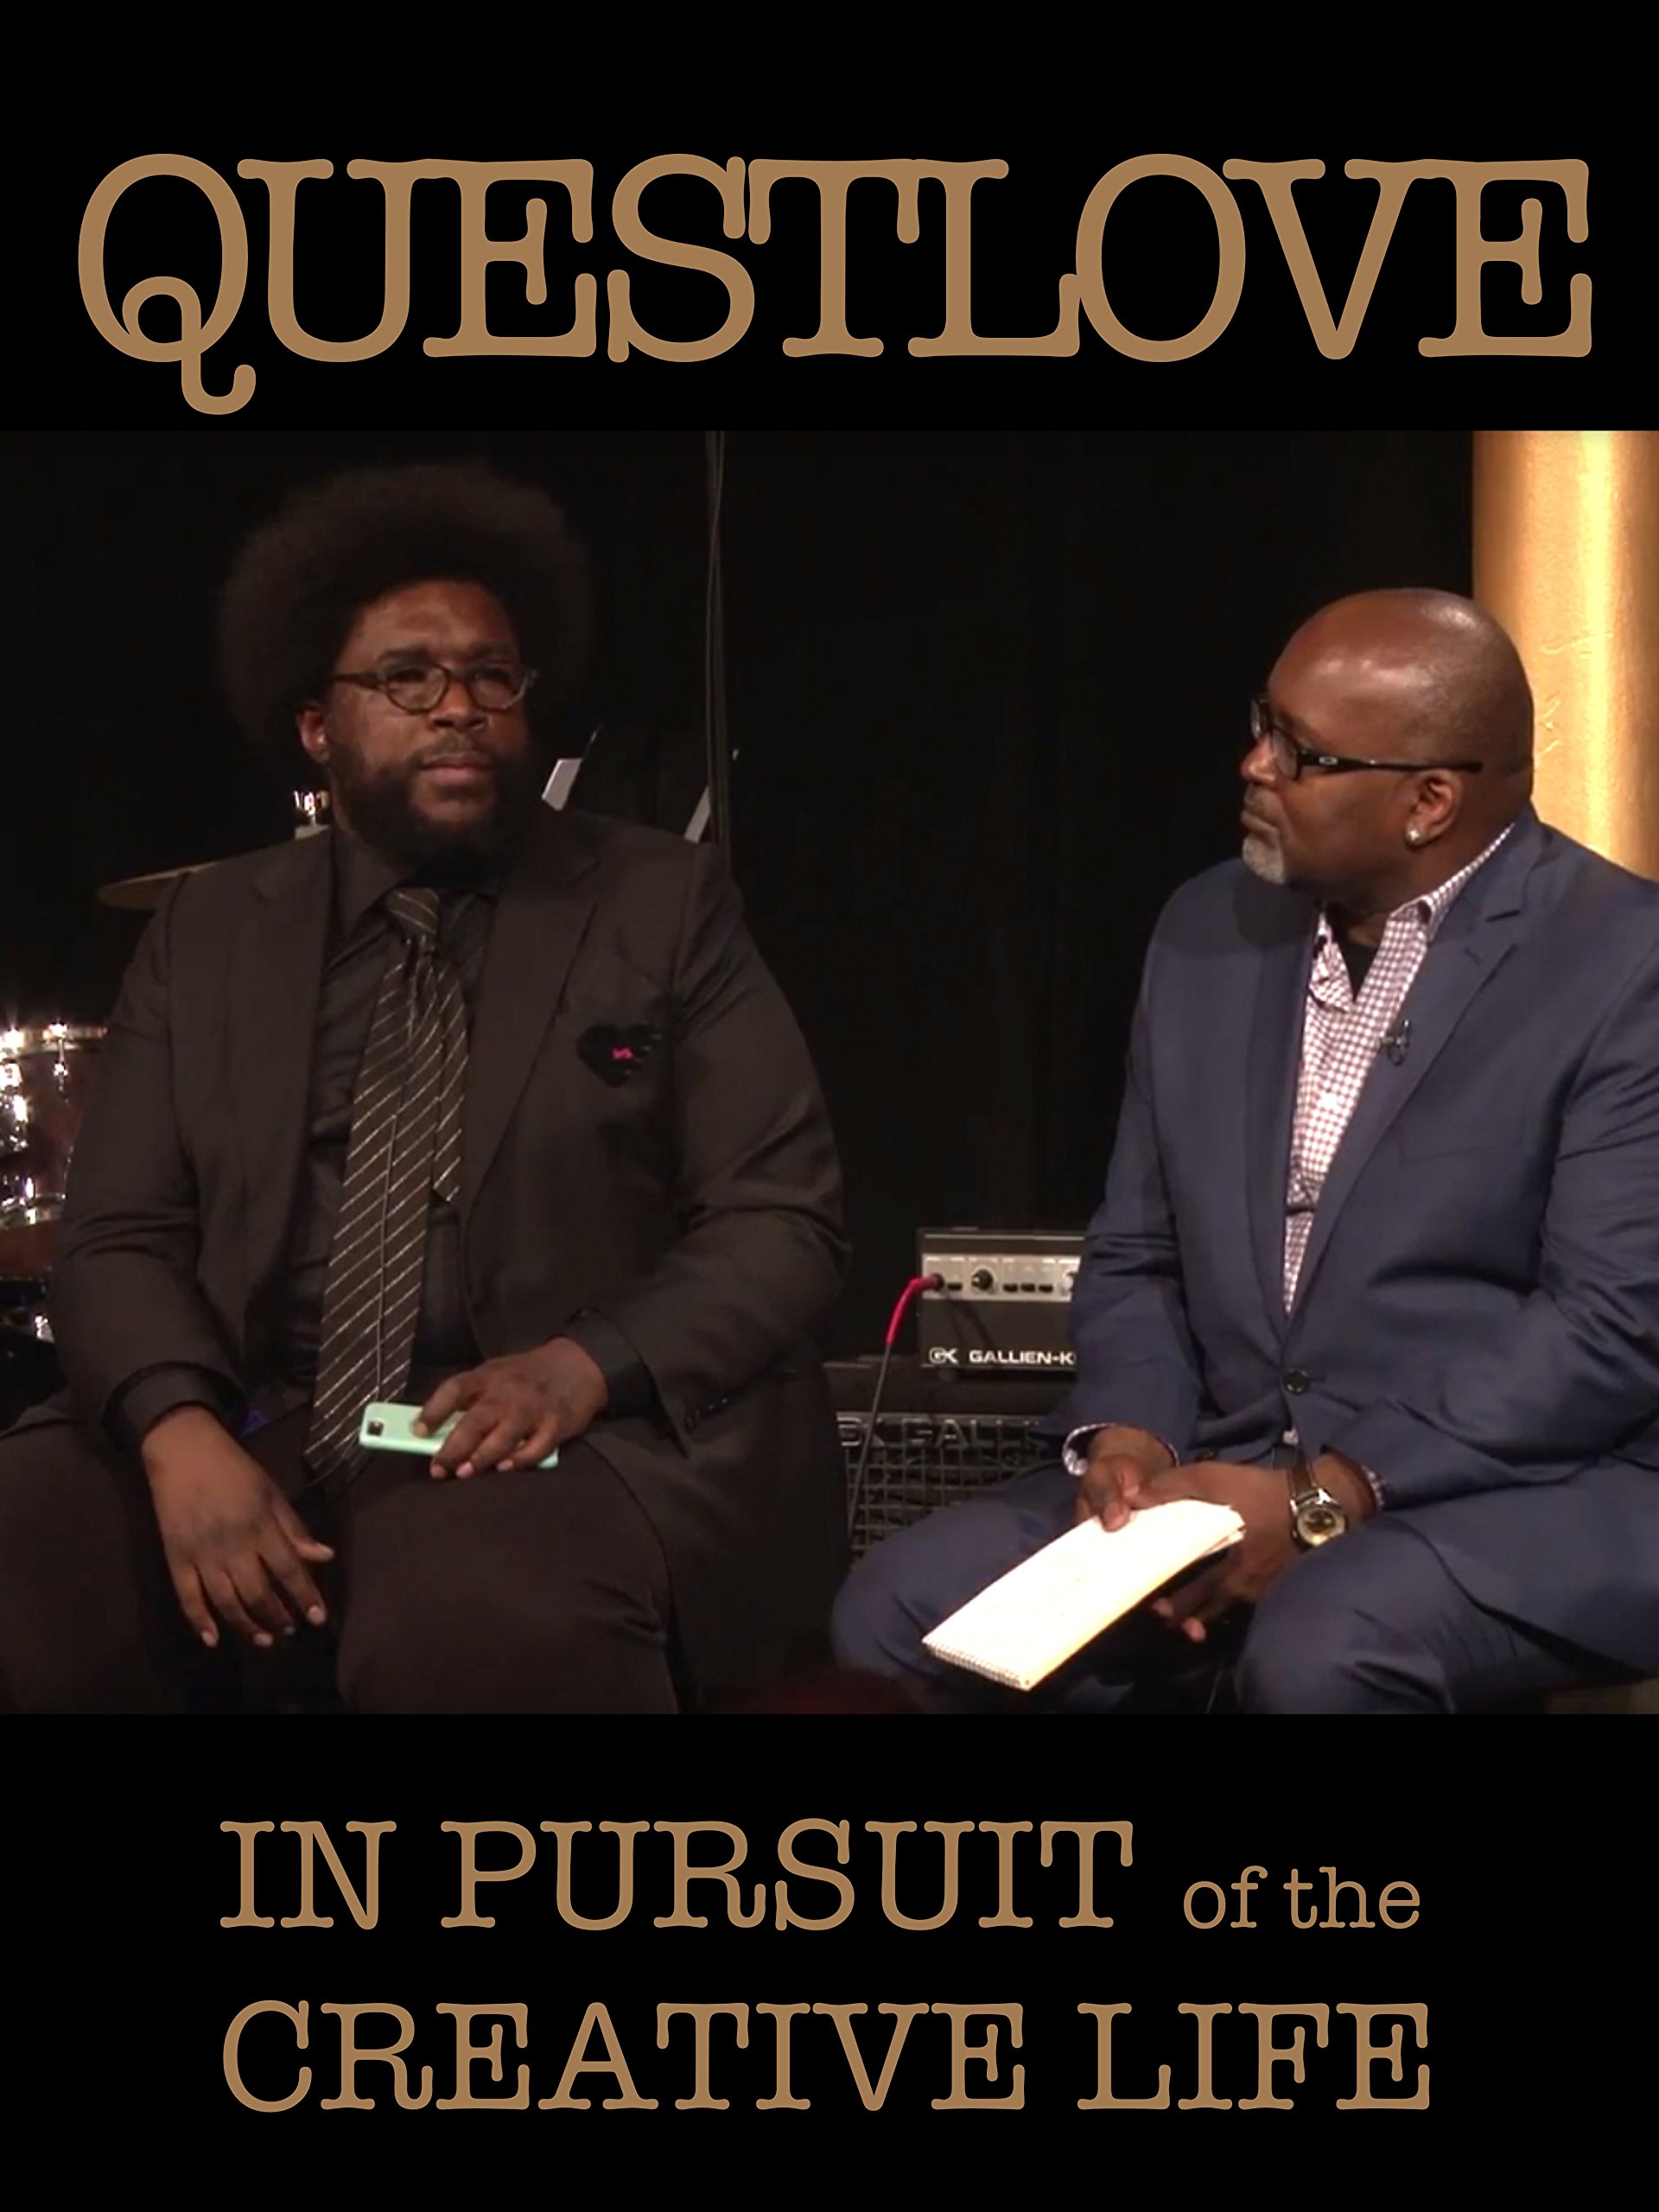 Questlove: In Pursuit of the Creative Life